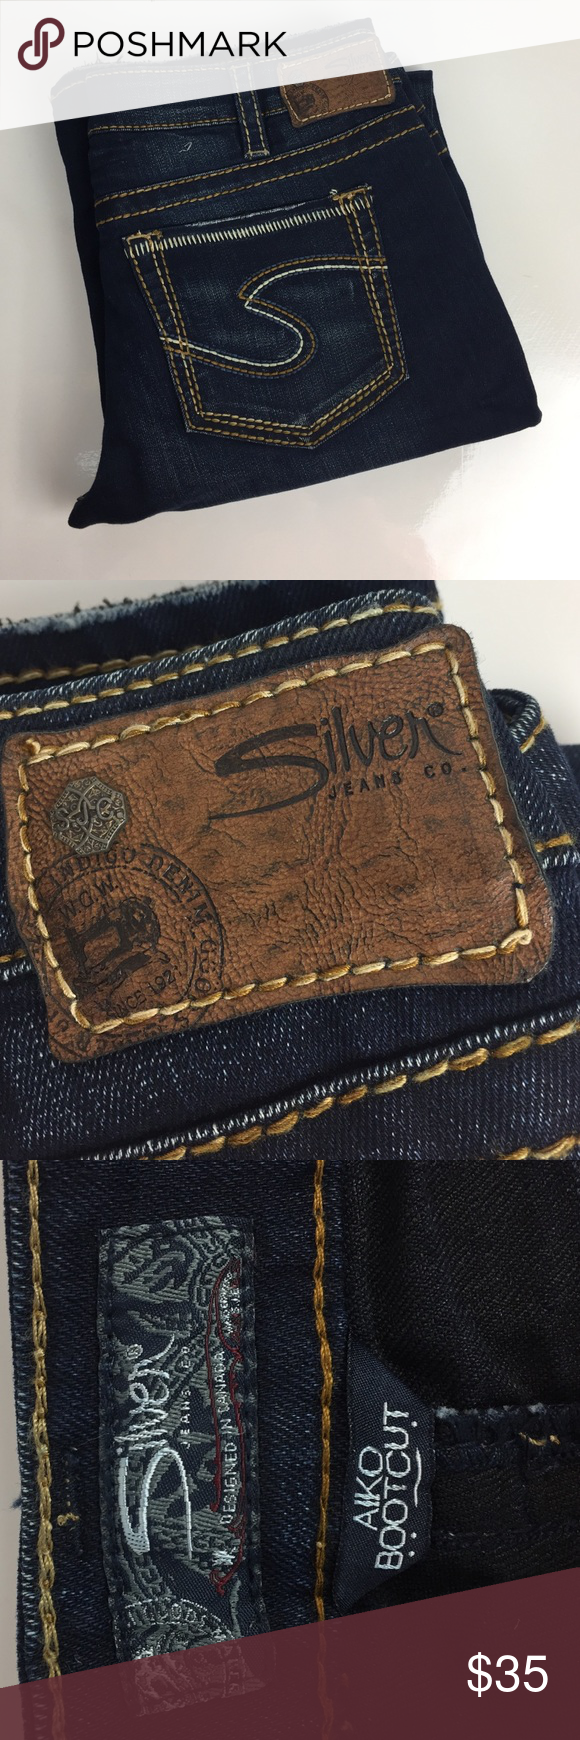 Silver Aiko Bootcut Jeans - W32 L33 These were worn only a few times. In great condition! Silver Jeans Jeans Boot Cut